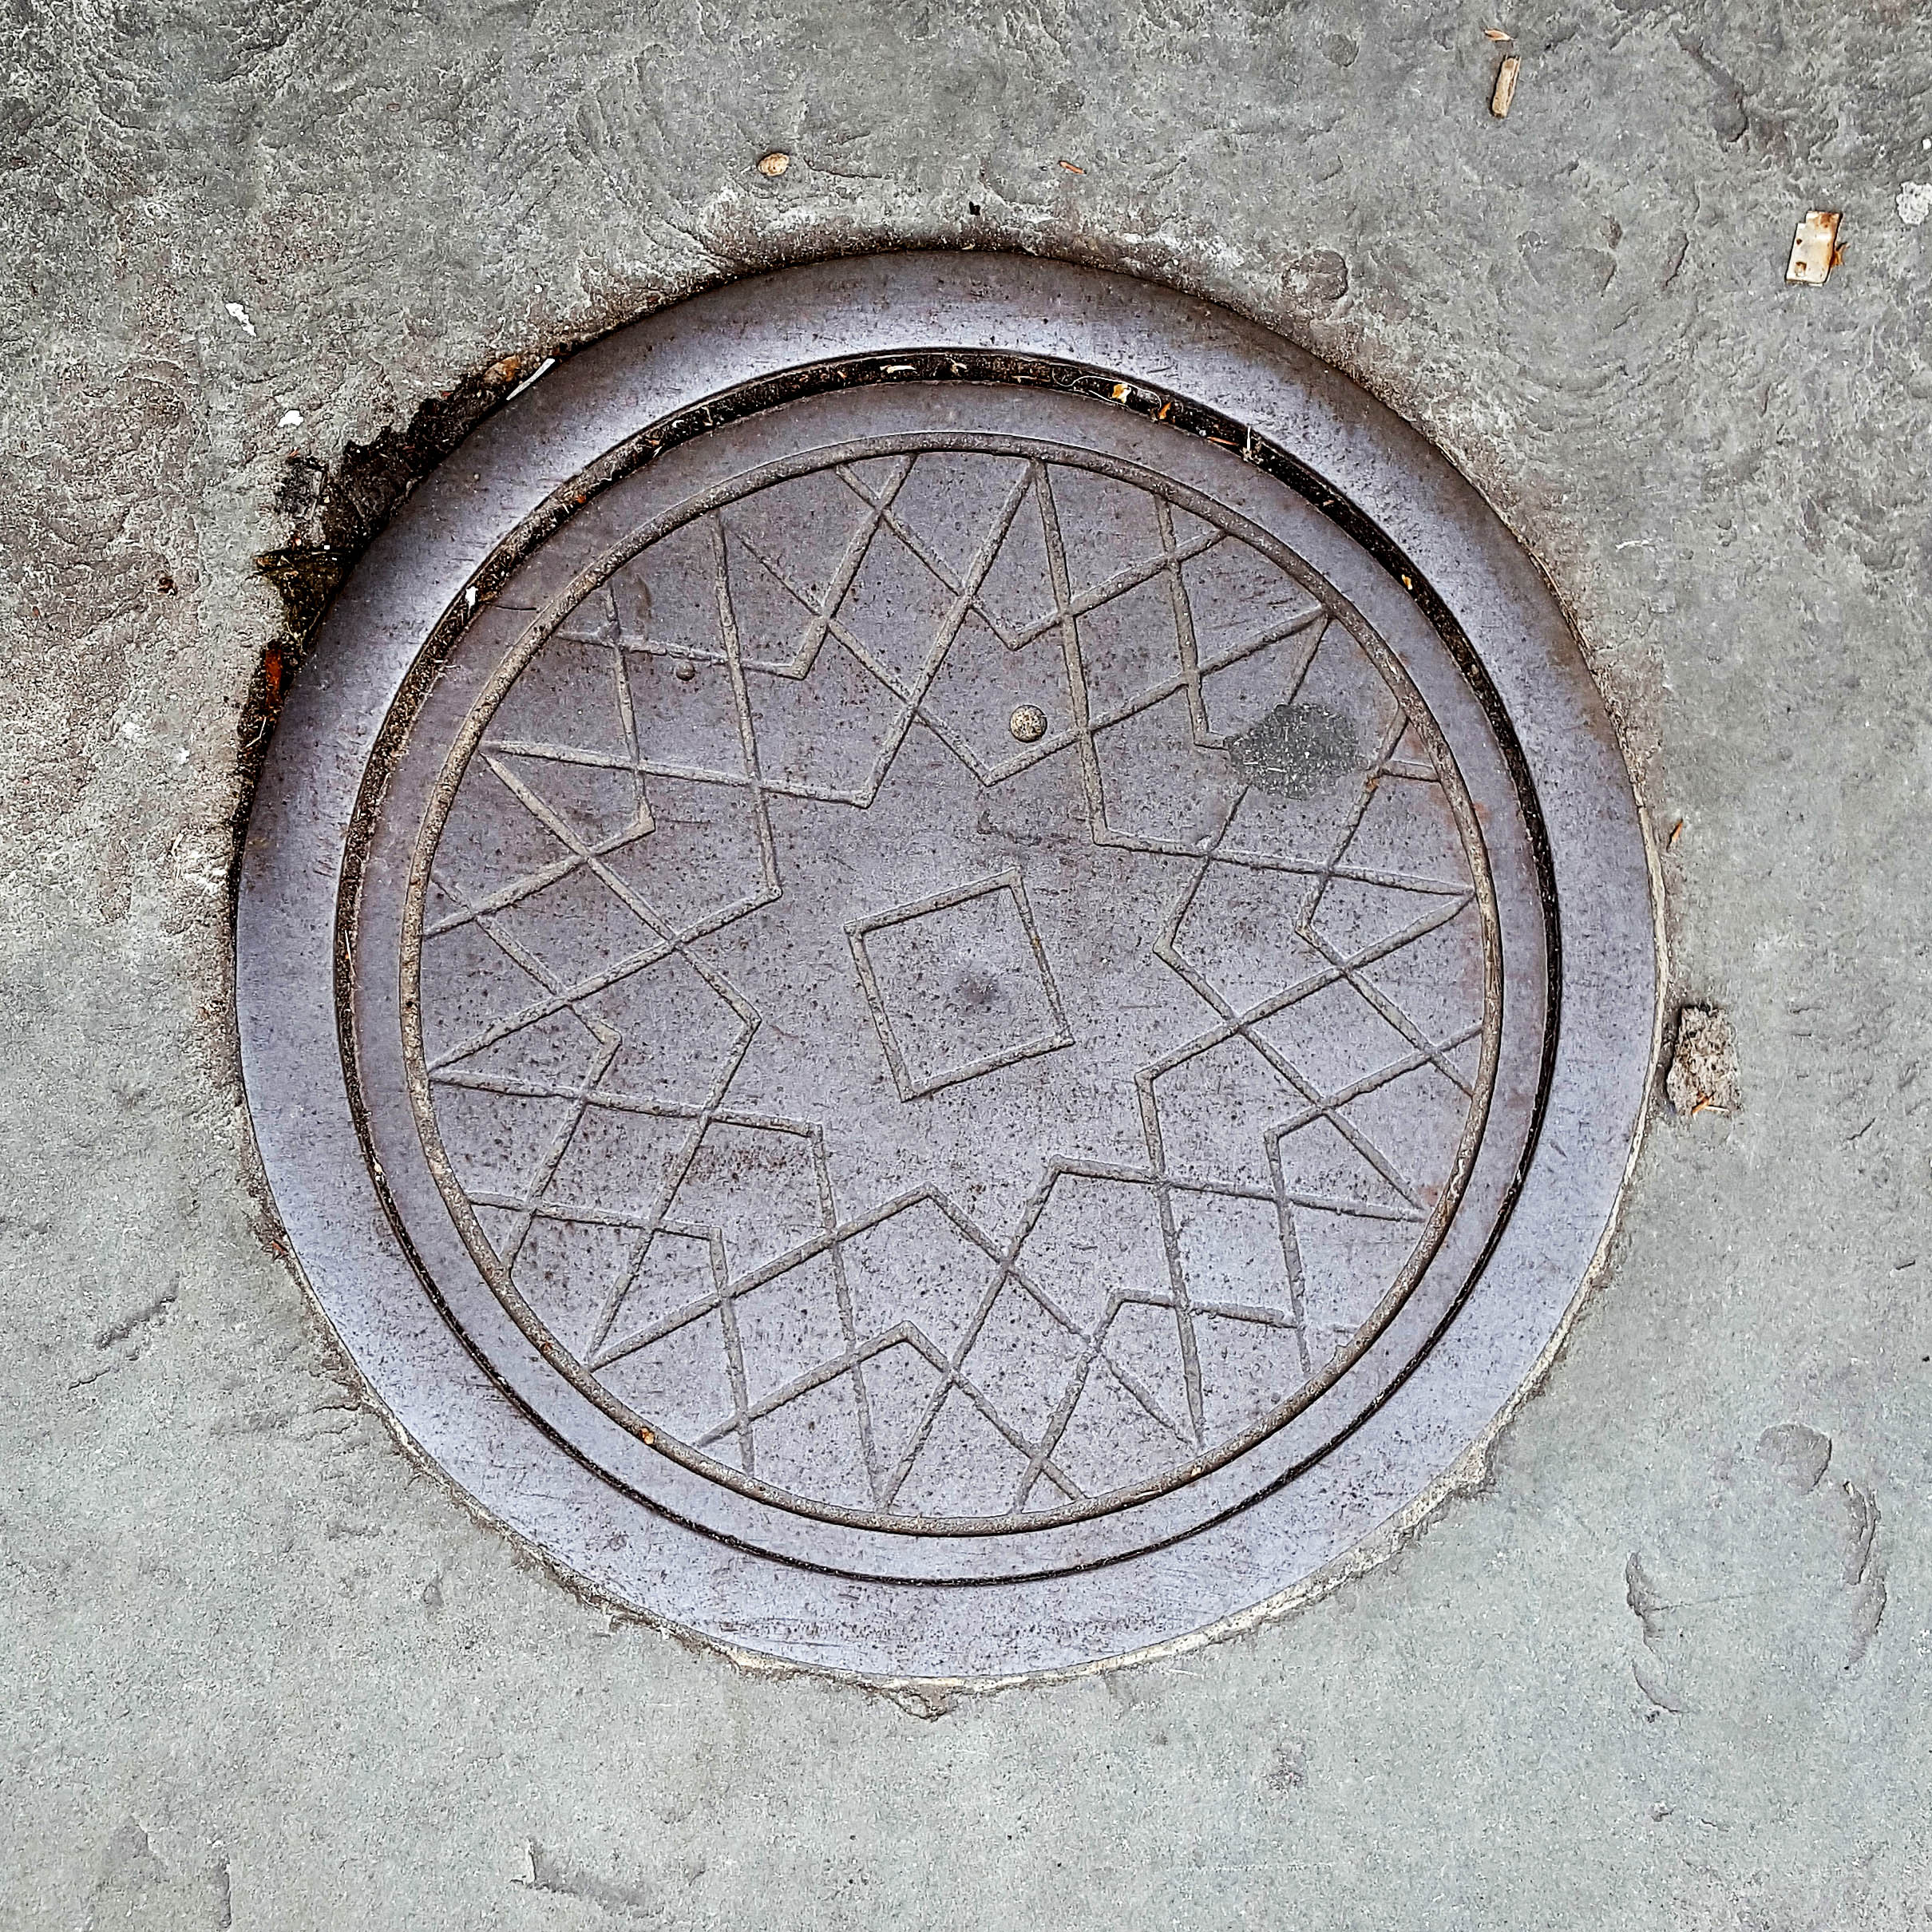 Manhole Cover, London - Cast iron surround with criss cross star pattern and square in the centre